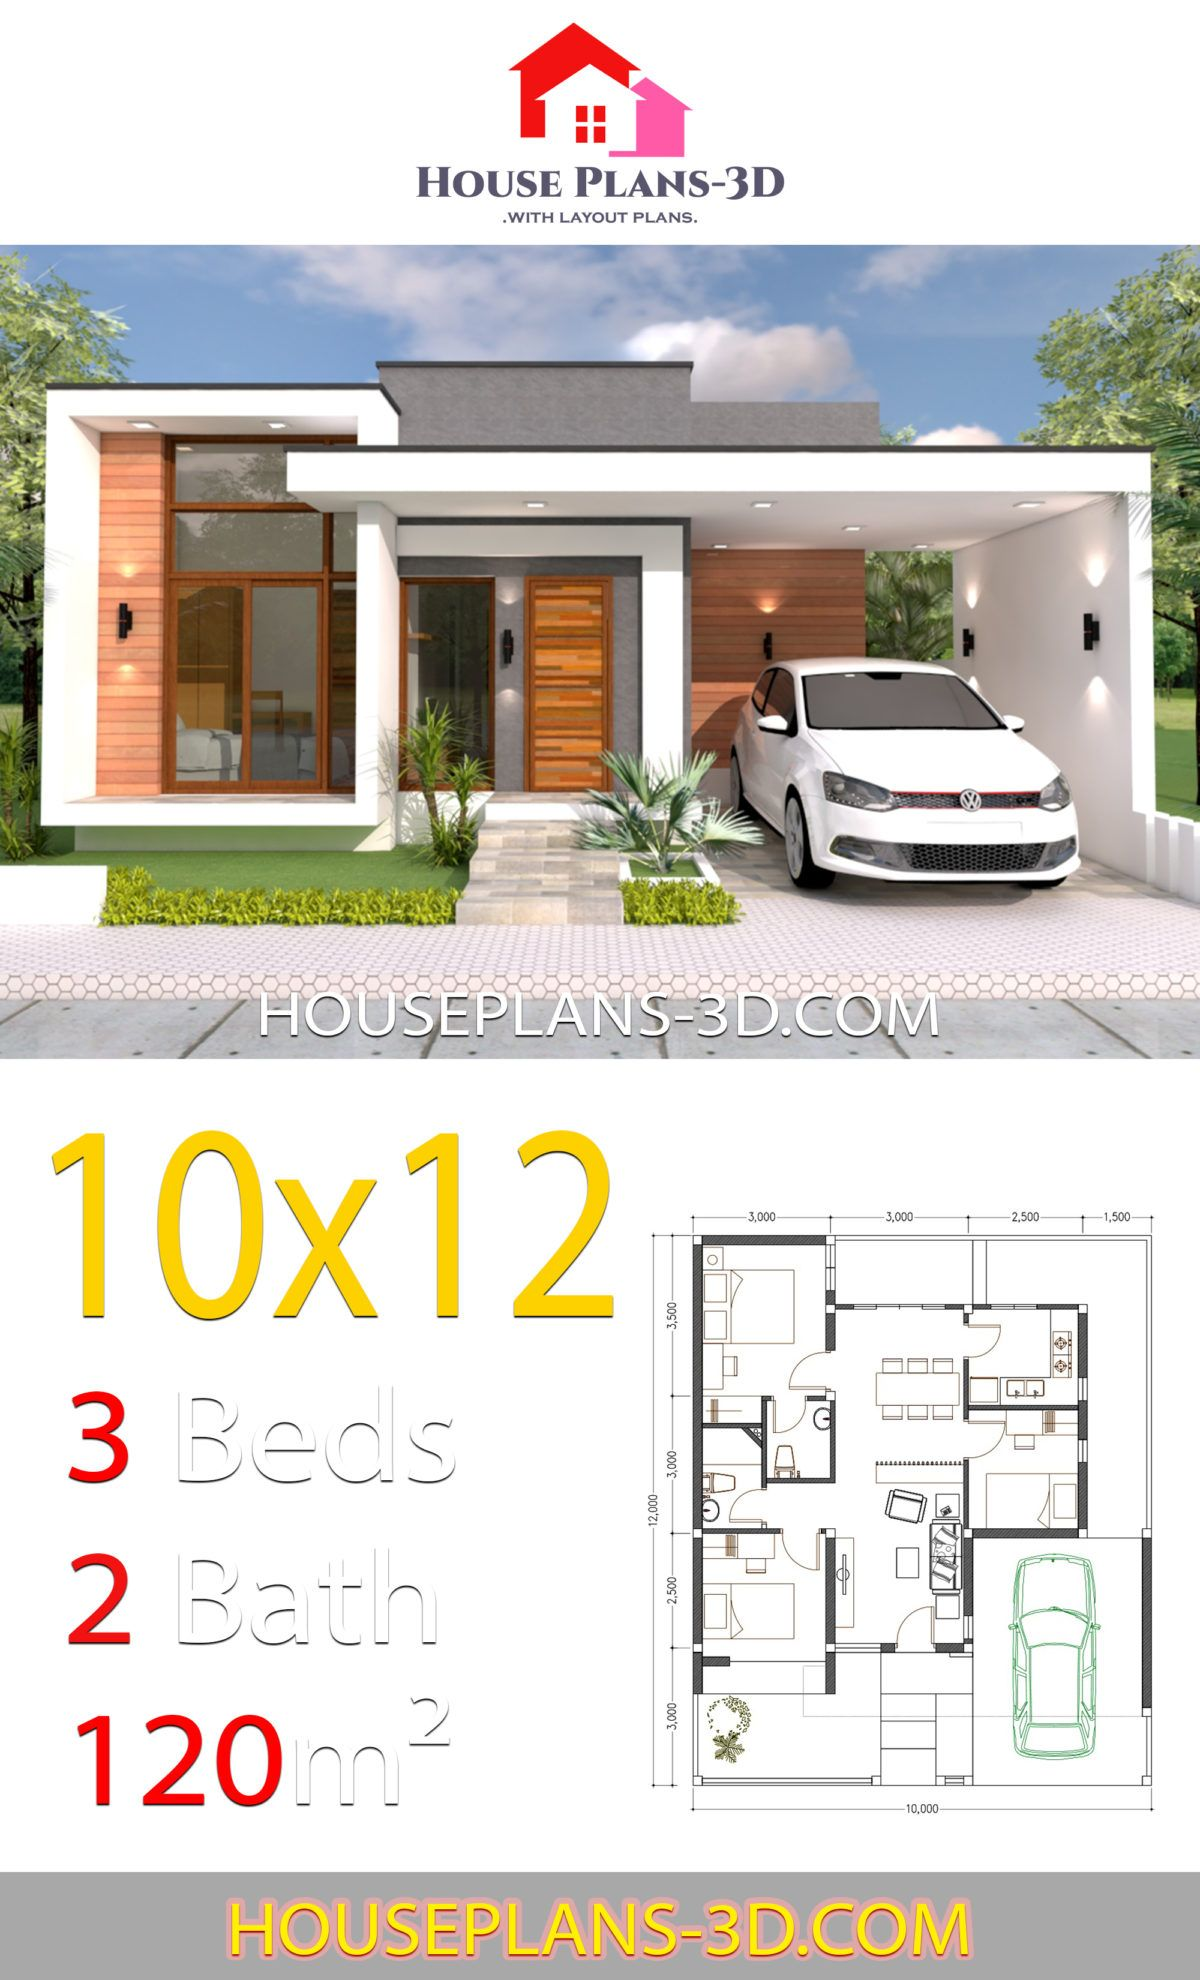 House Design 10x12 With 3 Bedrooms Terrace Roof House Plans 3d In 2020 House Plans House Construction Plan Small House Design Plans